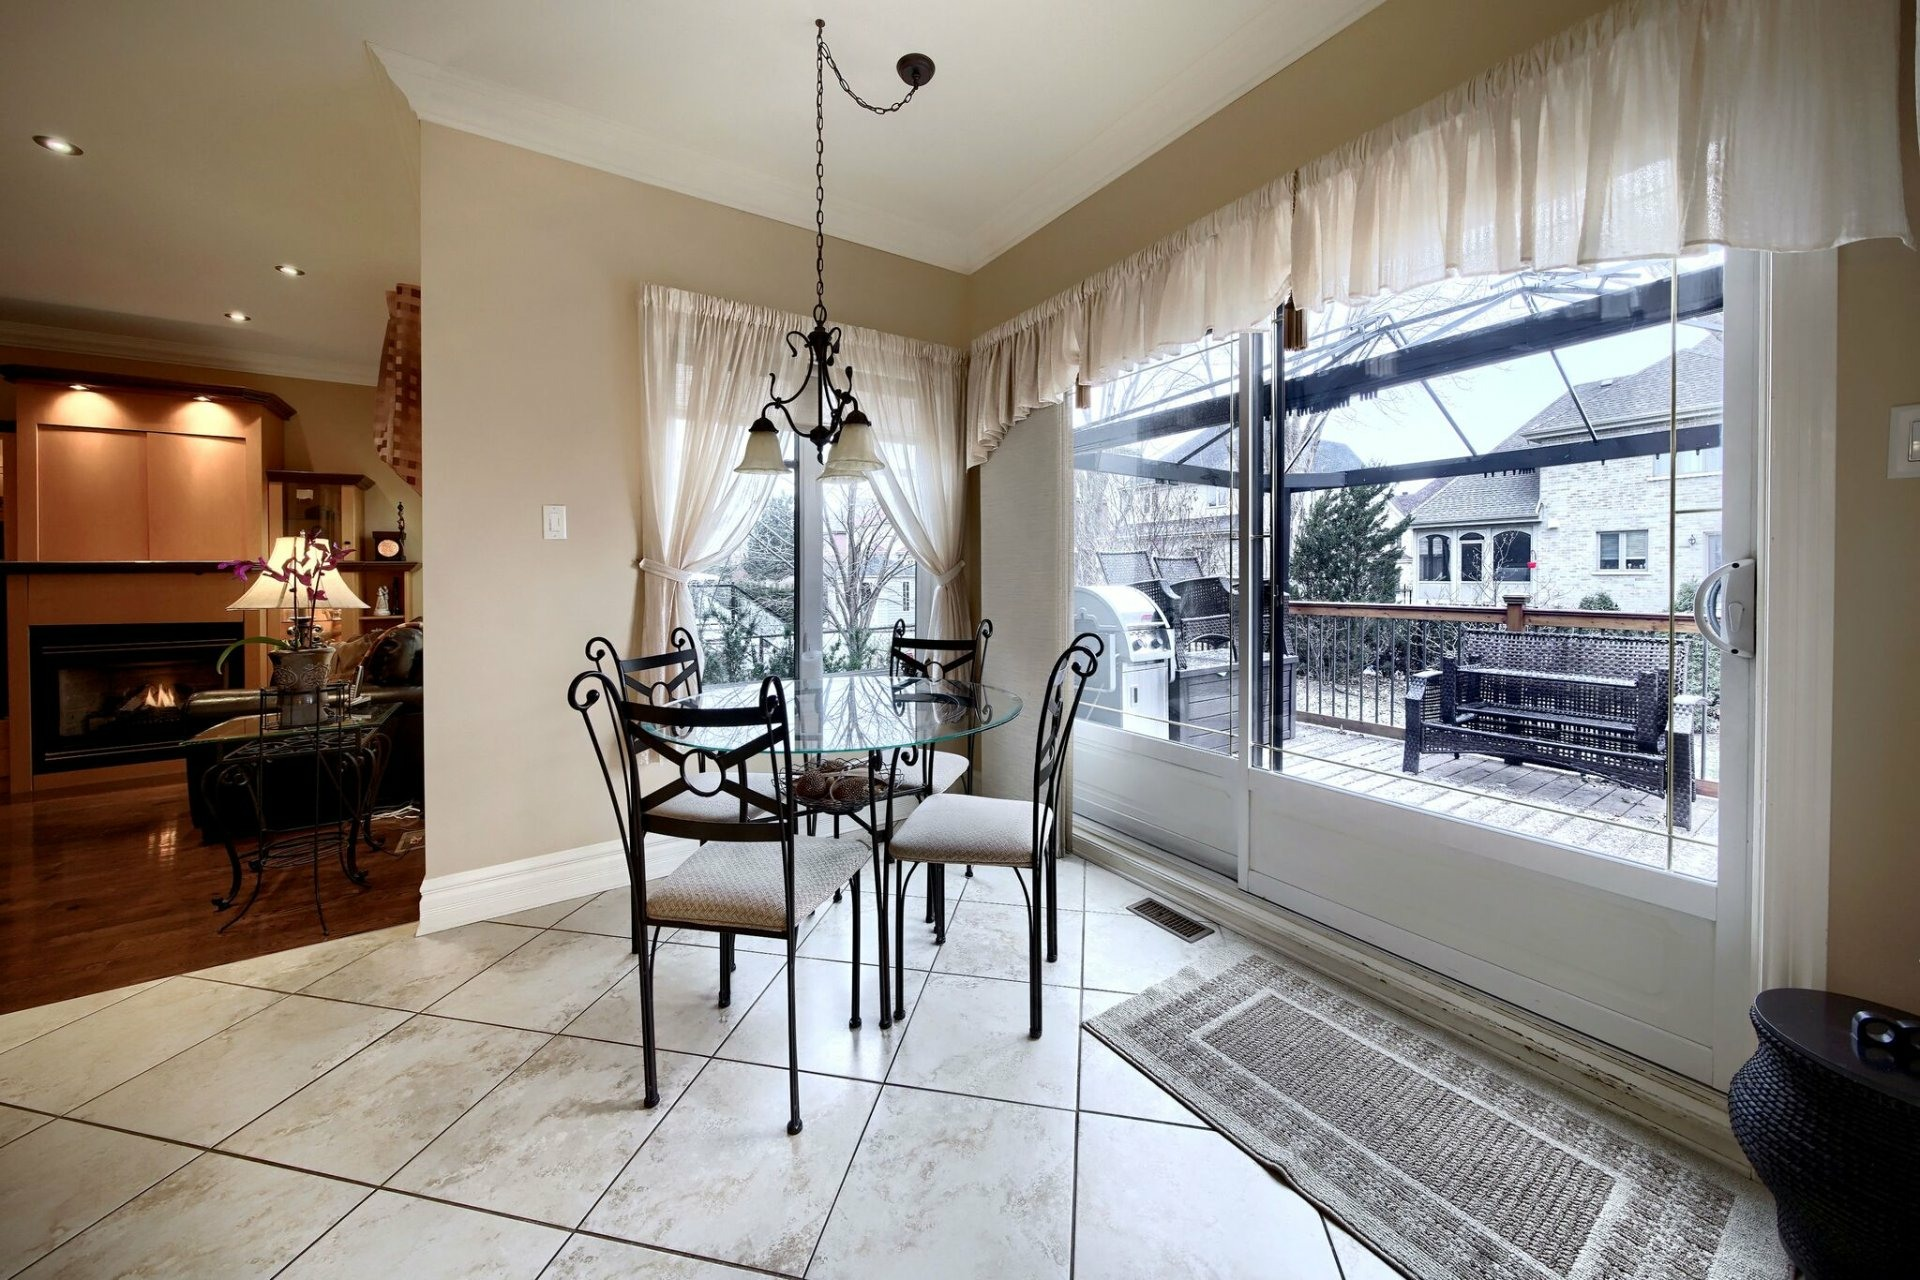 image 7 - House For sale Brossard - 17 rooms